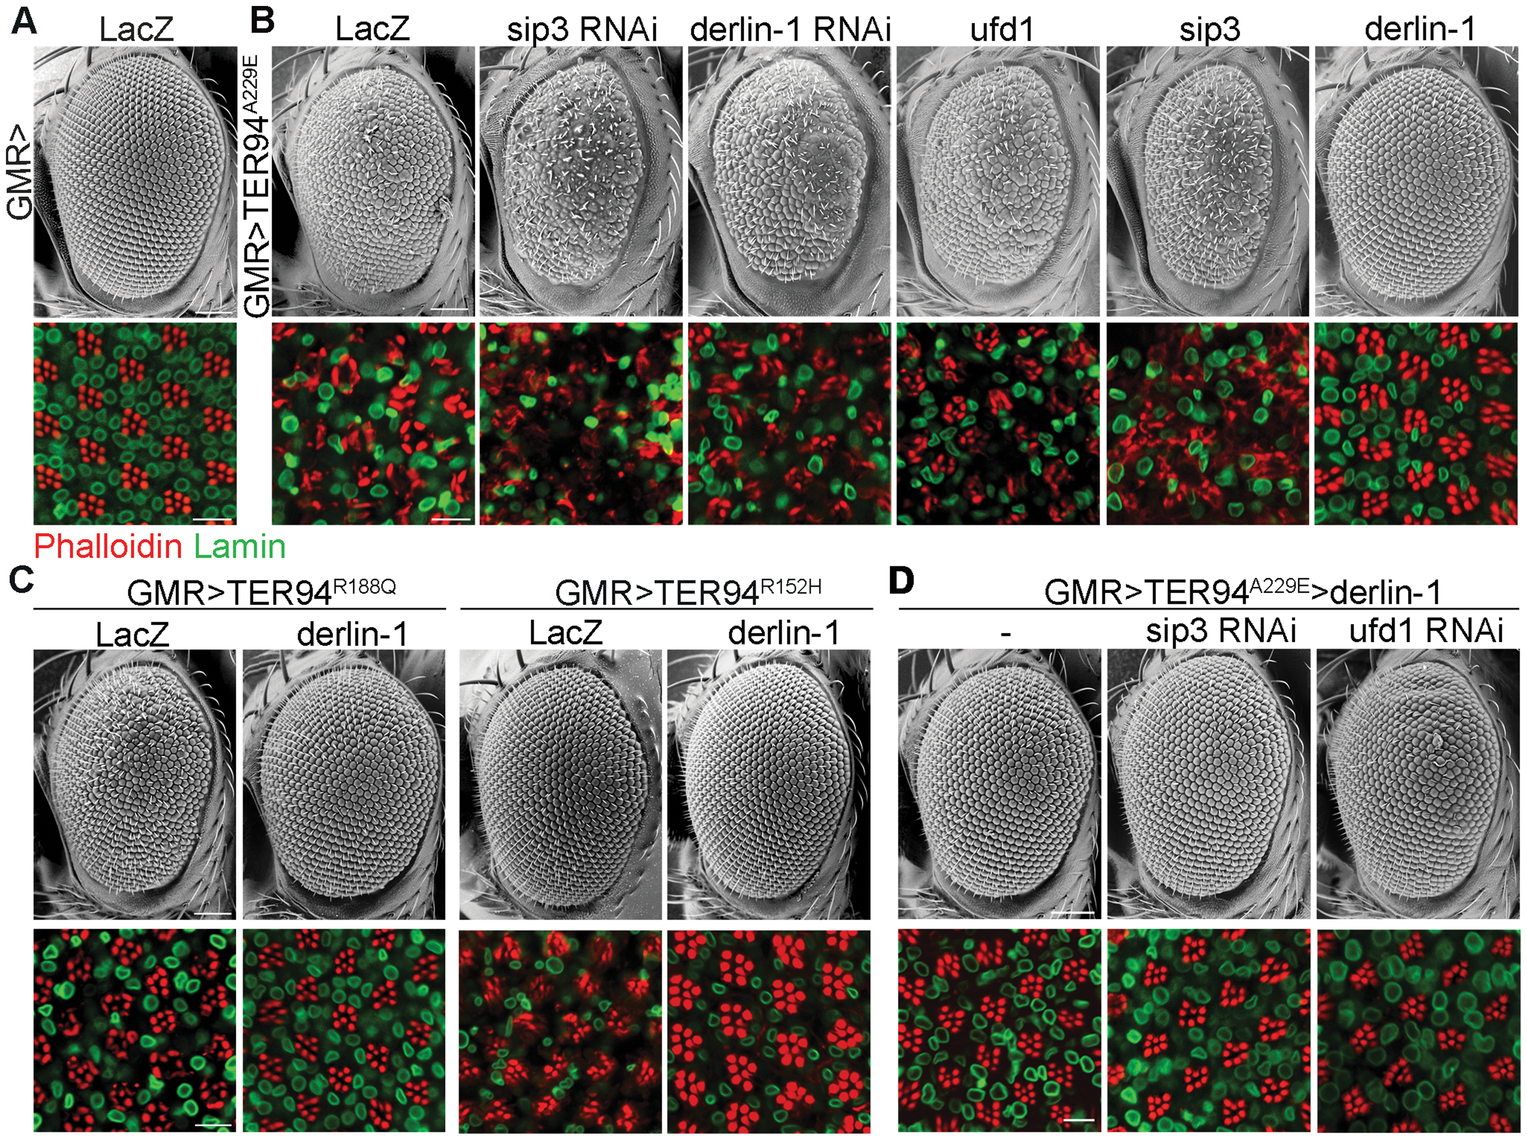 Derlin-1 modifies the neurodegeneration associated with the pathogenic TER94 mutants.